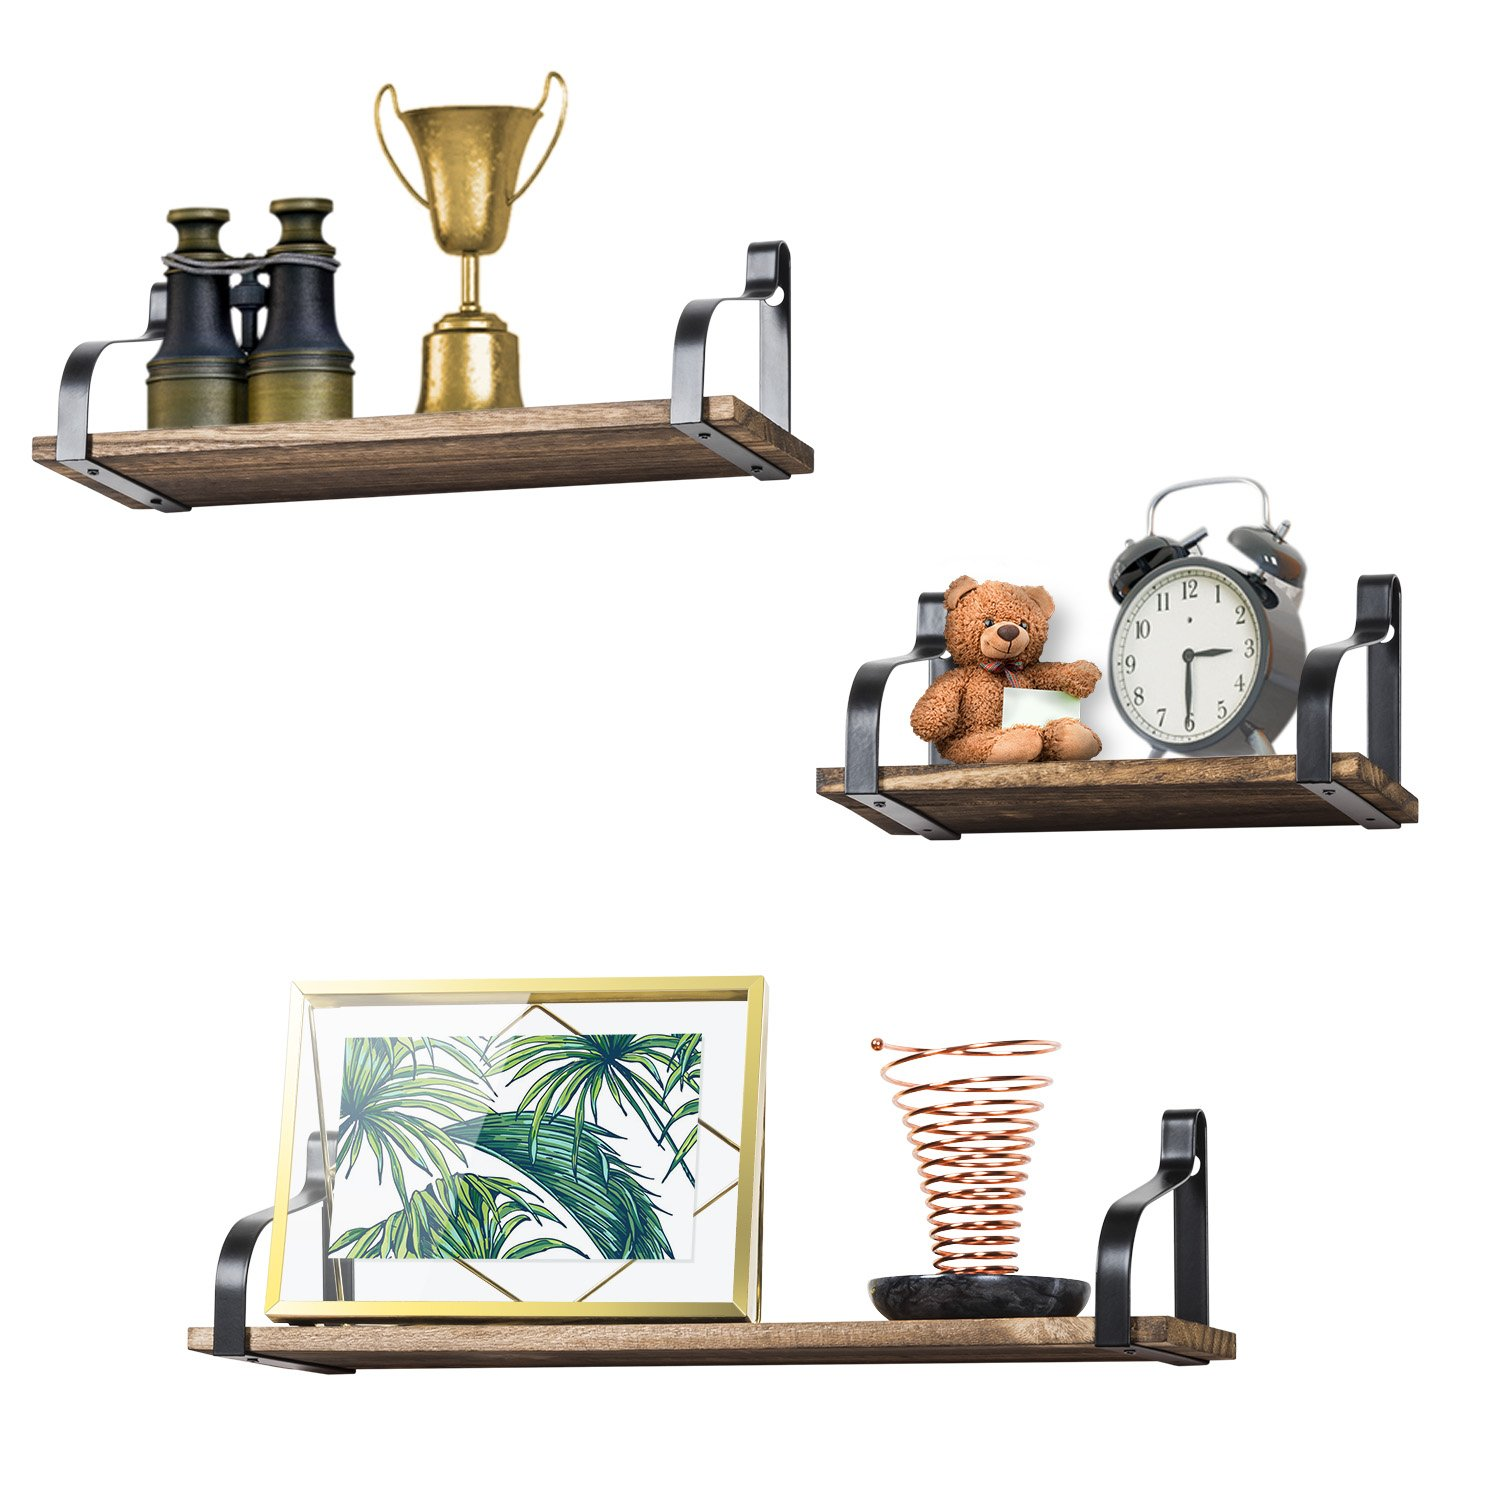 Love-KANKEI Floating Shelves Wall Mounted - Rustic Wood Wall Shelves Set of 3 Bedroom Living Room Bathroom Kitchen